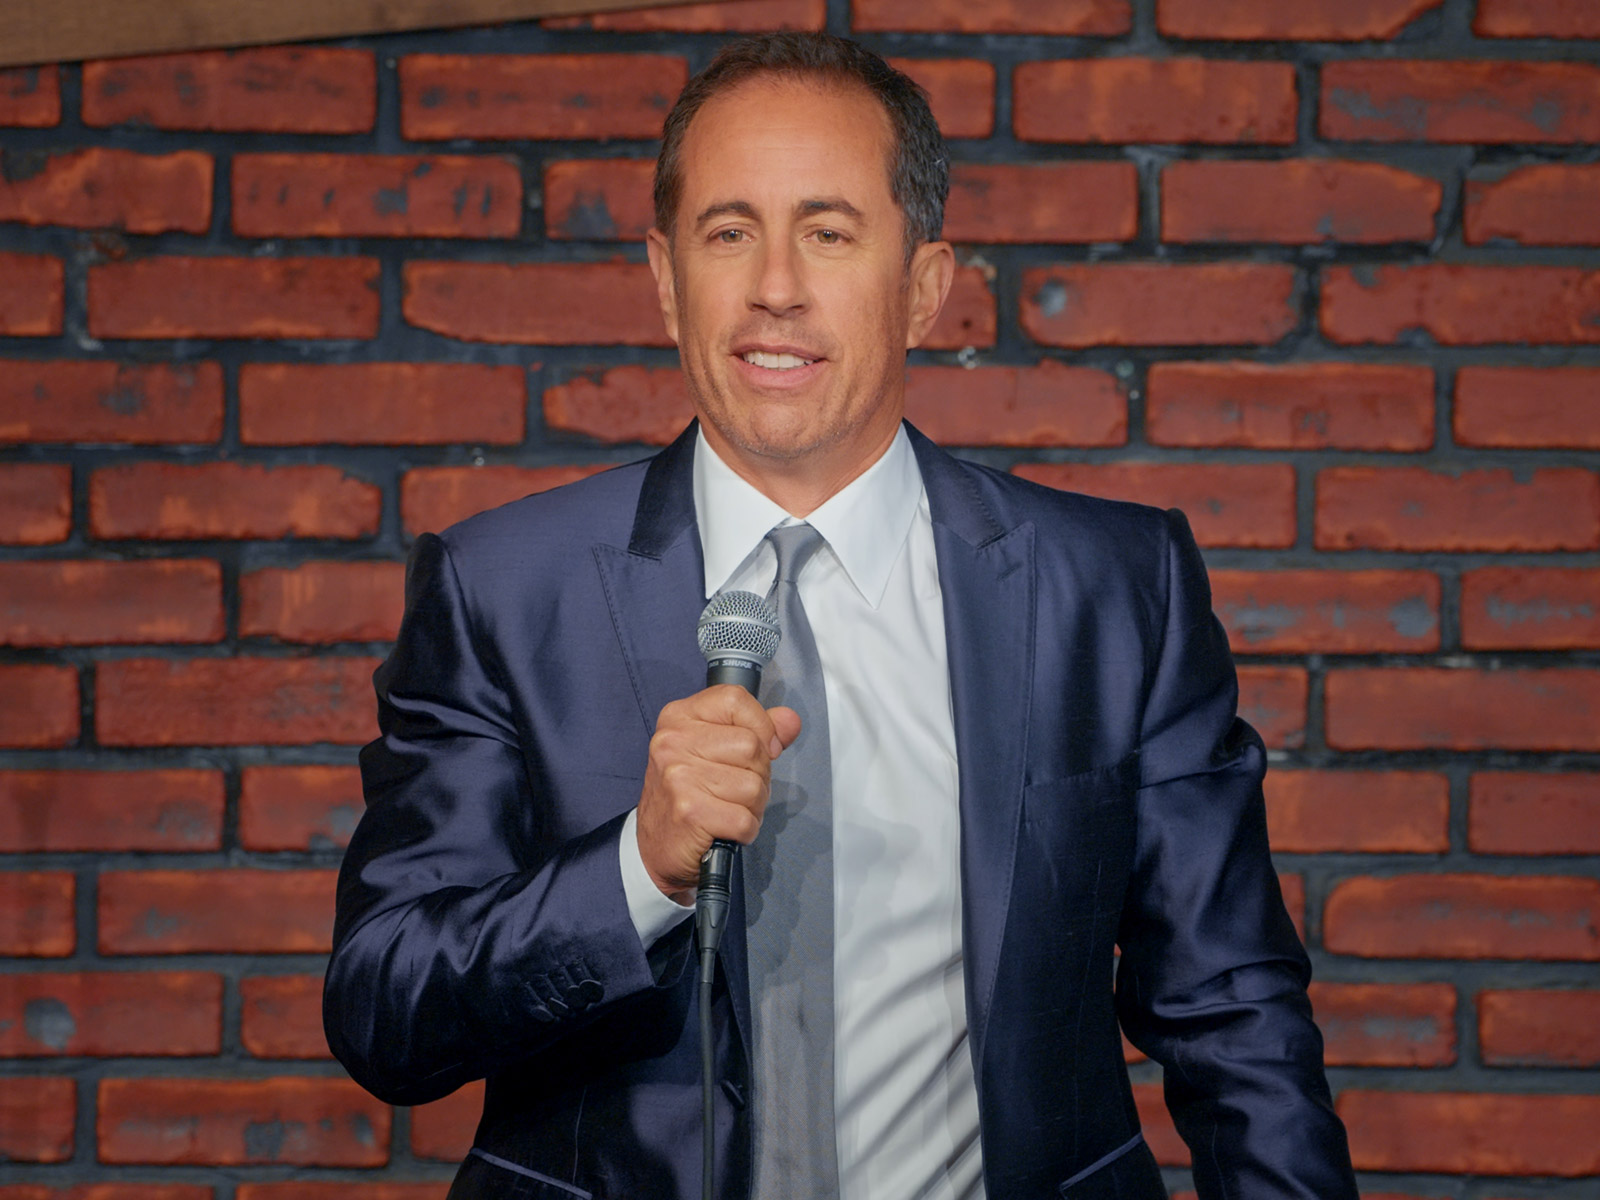 Why Coffee? Jerry Seinfeld on the Beverage Back Story Behind 'Comedians In Cars Getting Coffee'